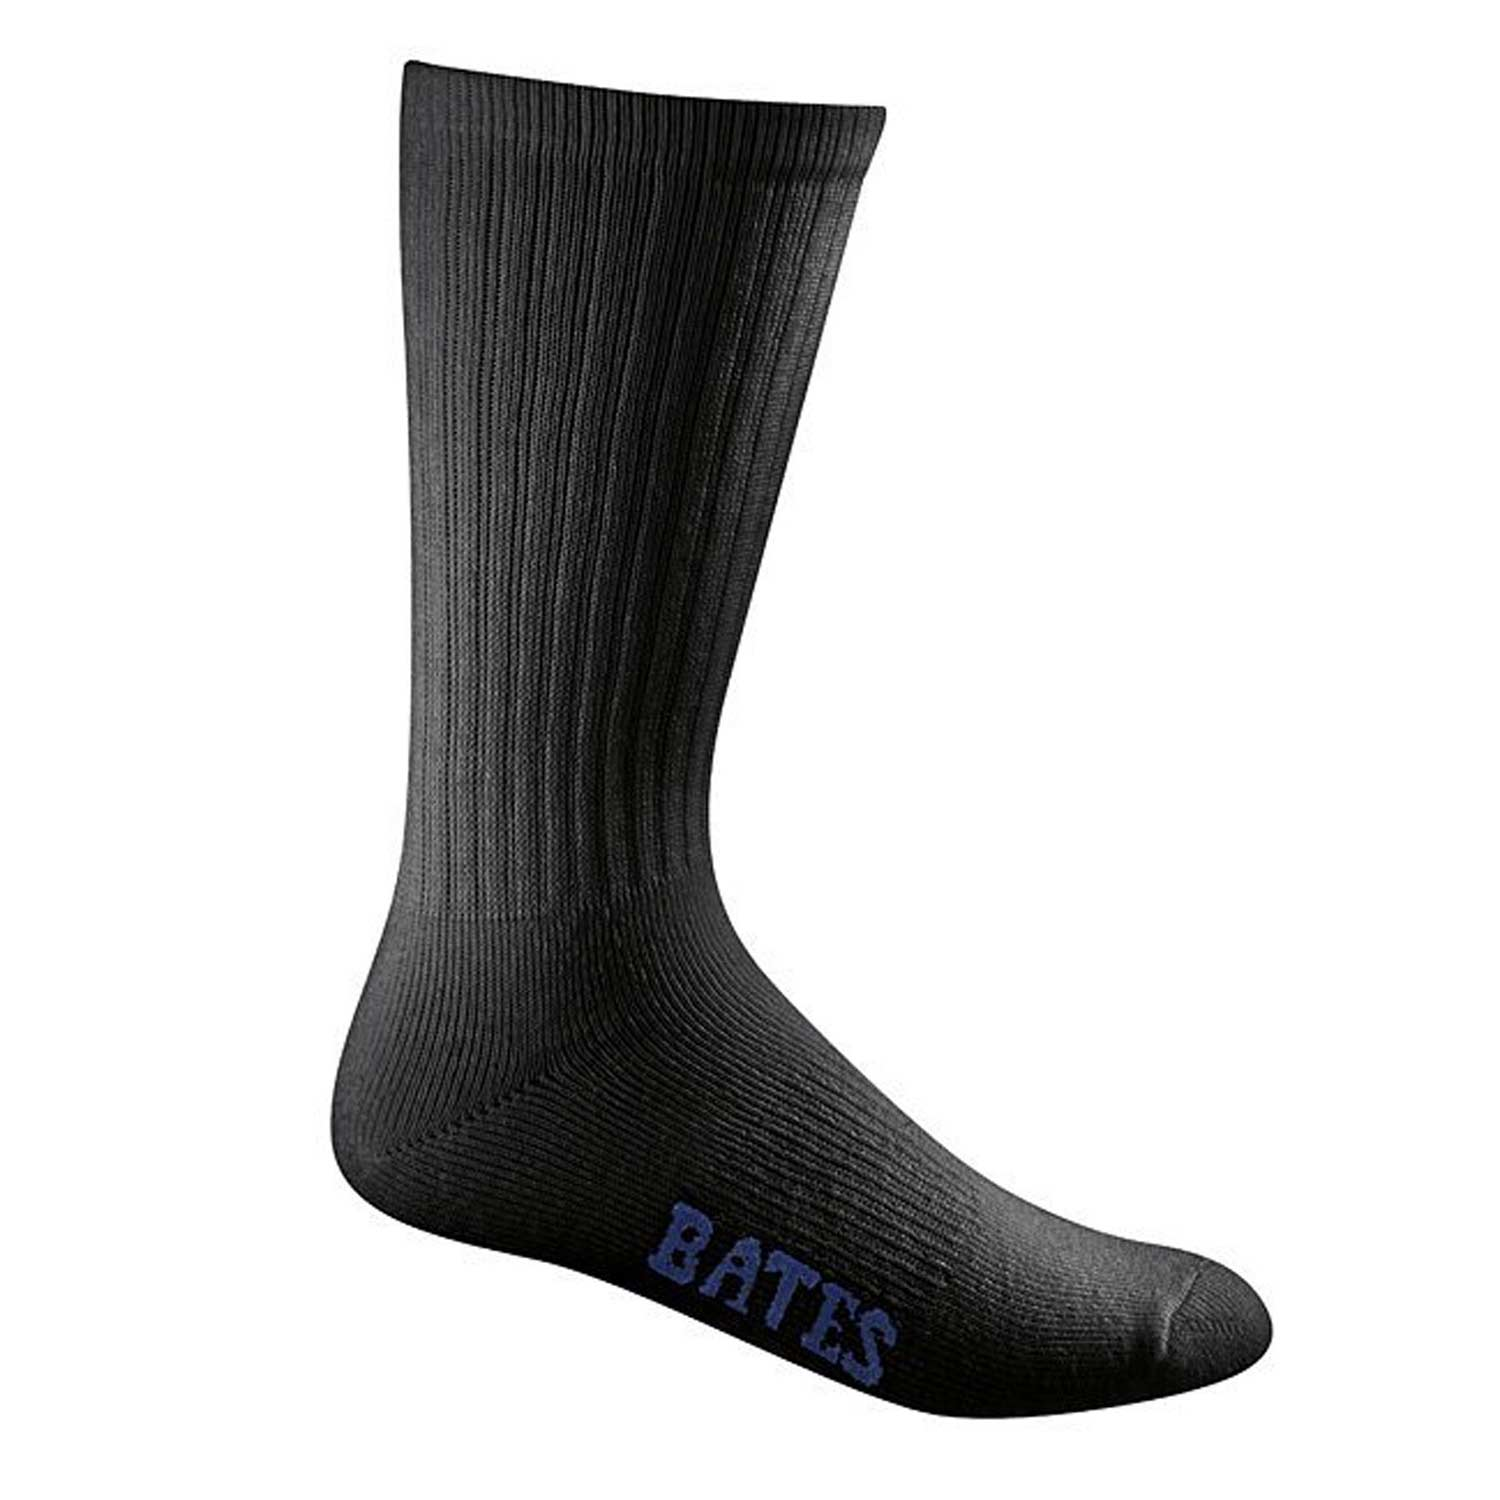 Bates Cotton Crew 4 Pack Sock